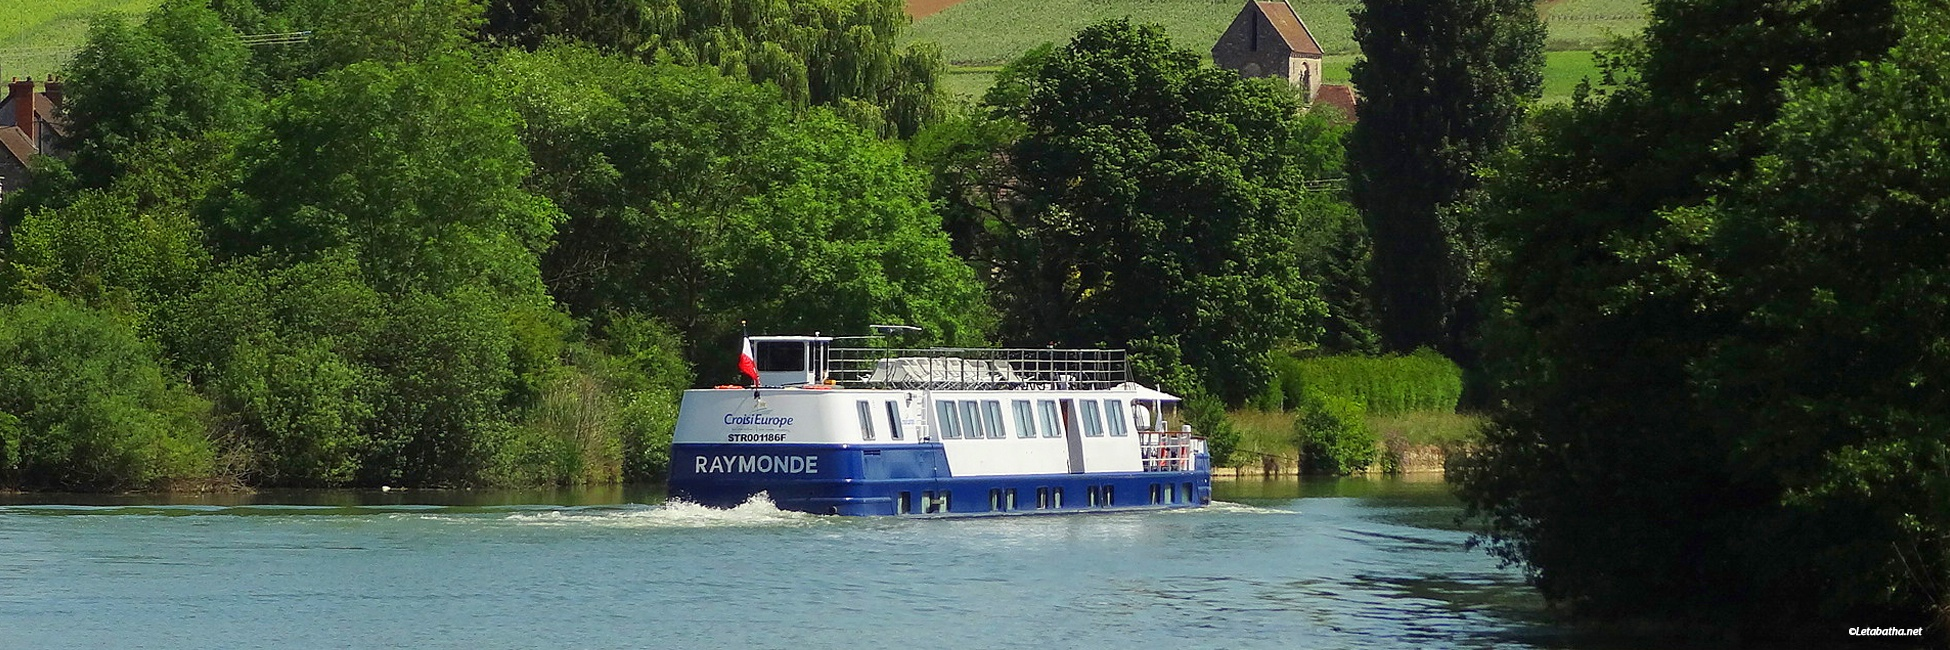 MS Raymonde - river cruise in France